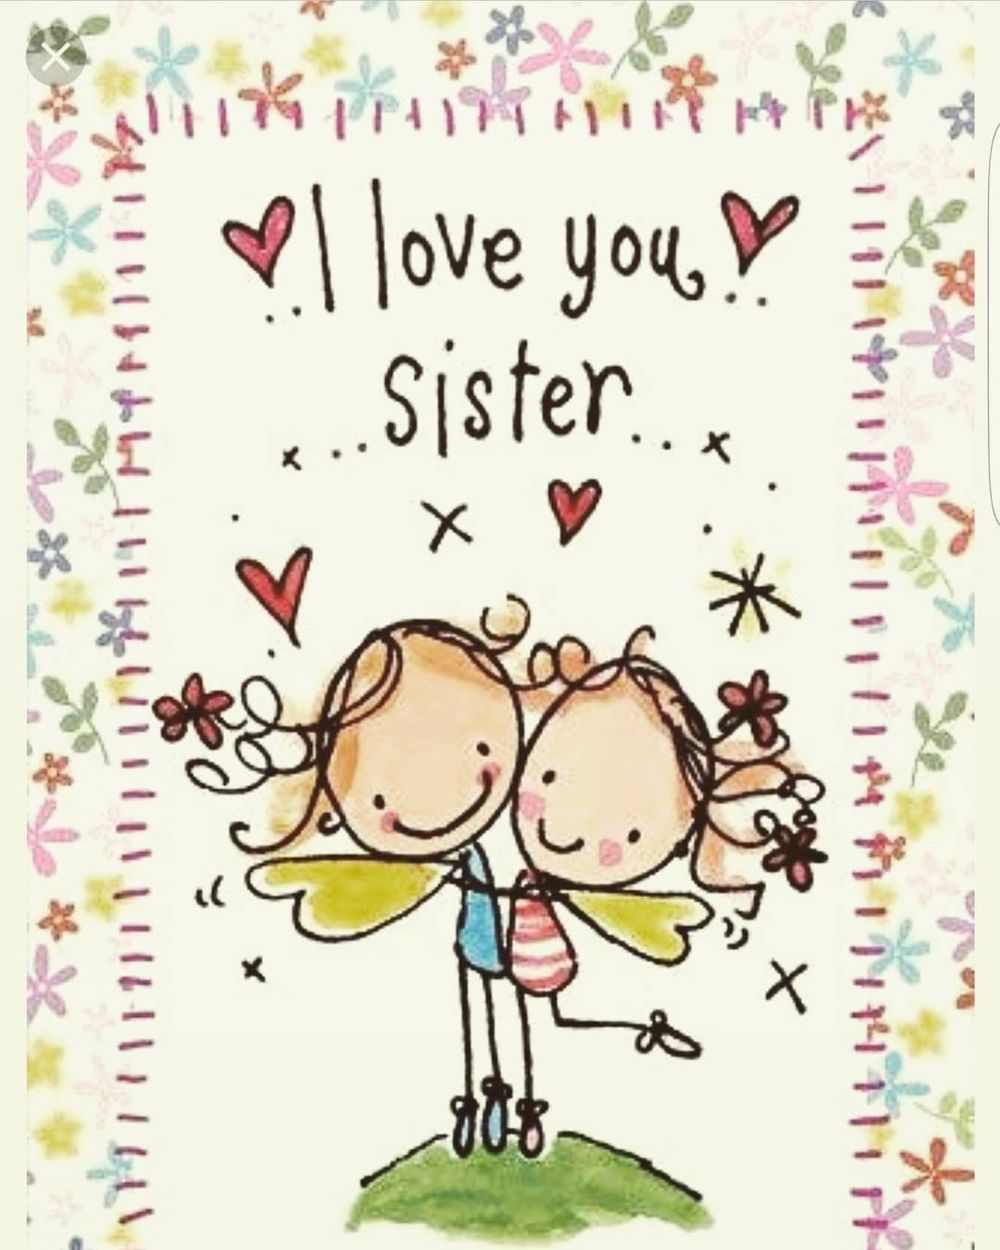 Happy Birthday Sister Images And Pictures Happy Birthday Sister Messages Happy Birthday Sister Quotes Sister Birthday Quotes Ideas for happy birthday my dear sister